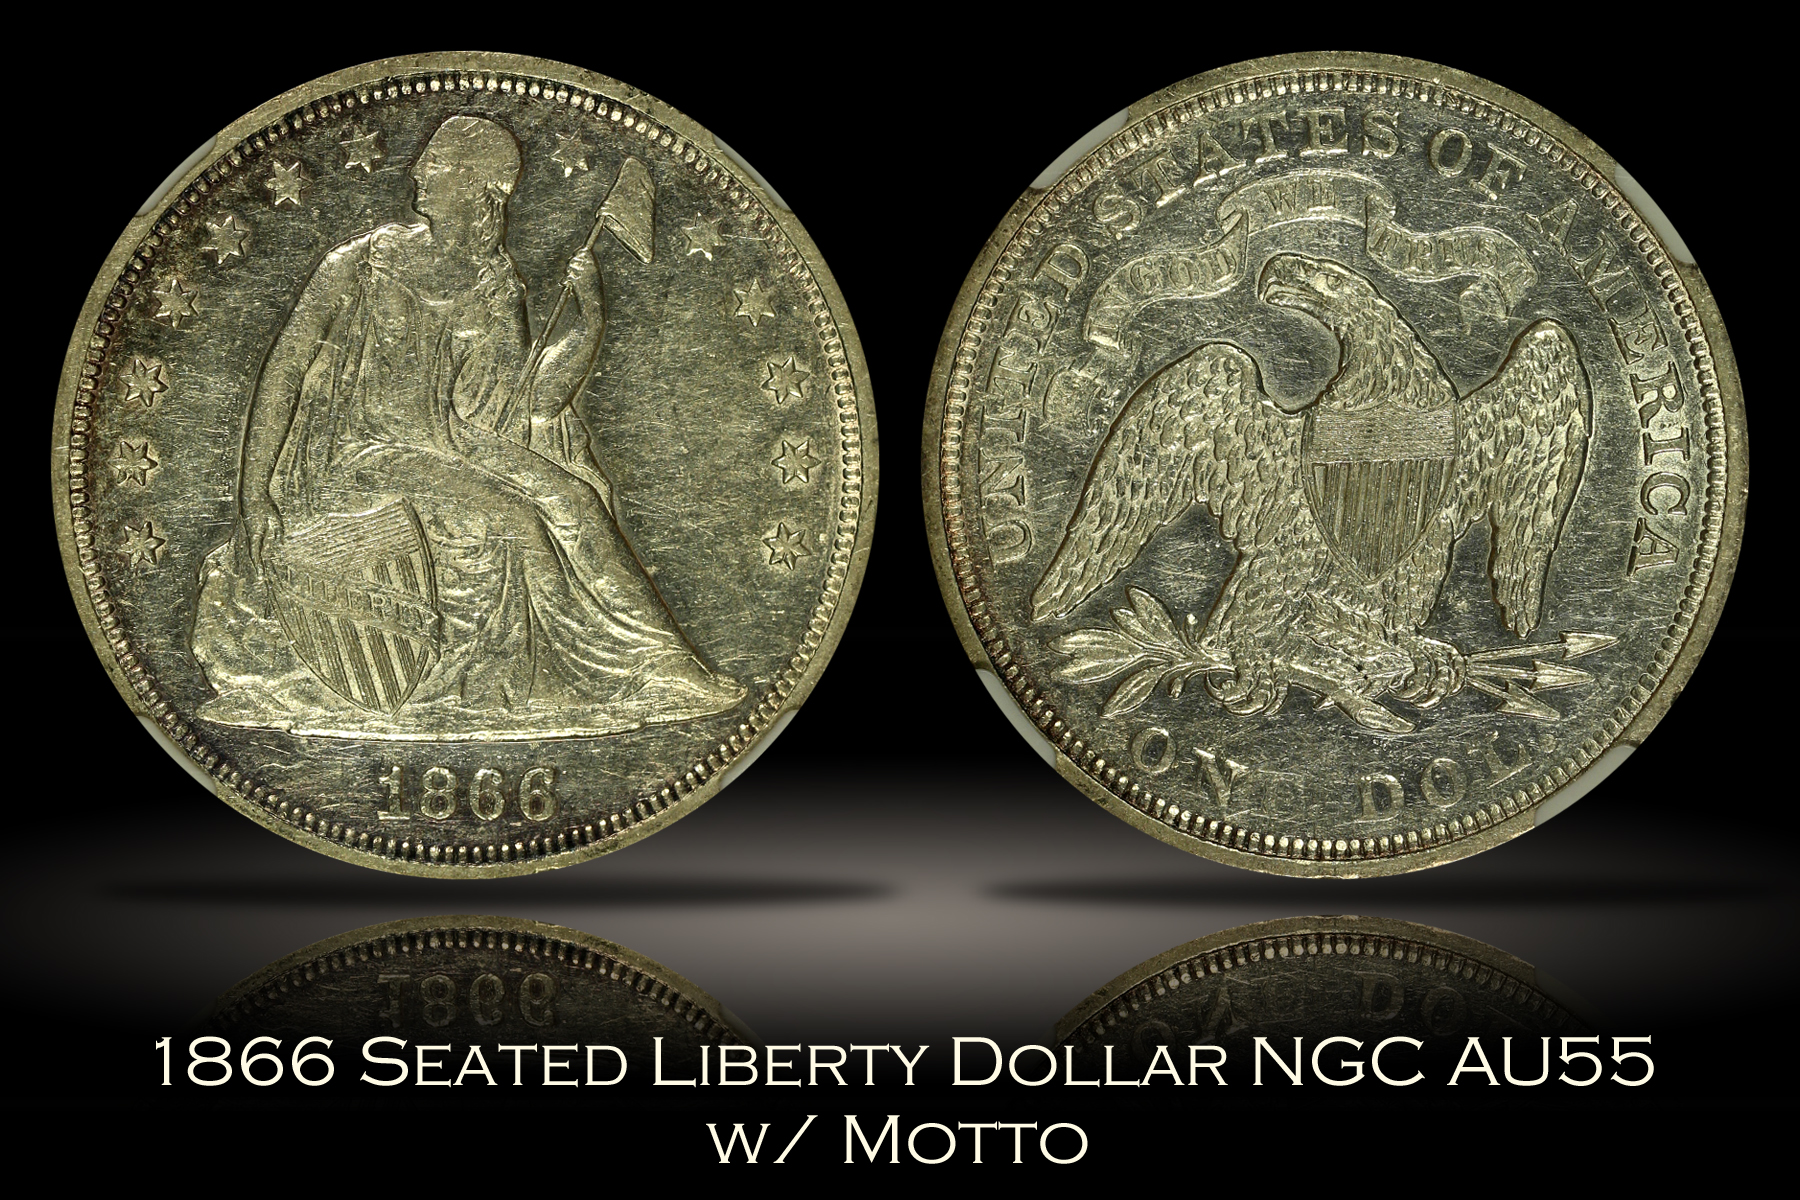 1866 Seated Liberty Dollar with Motto NGC AU55